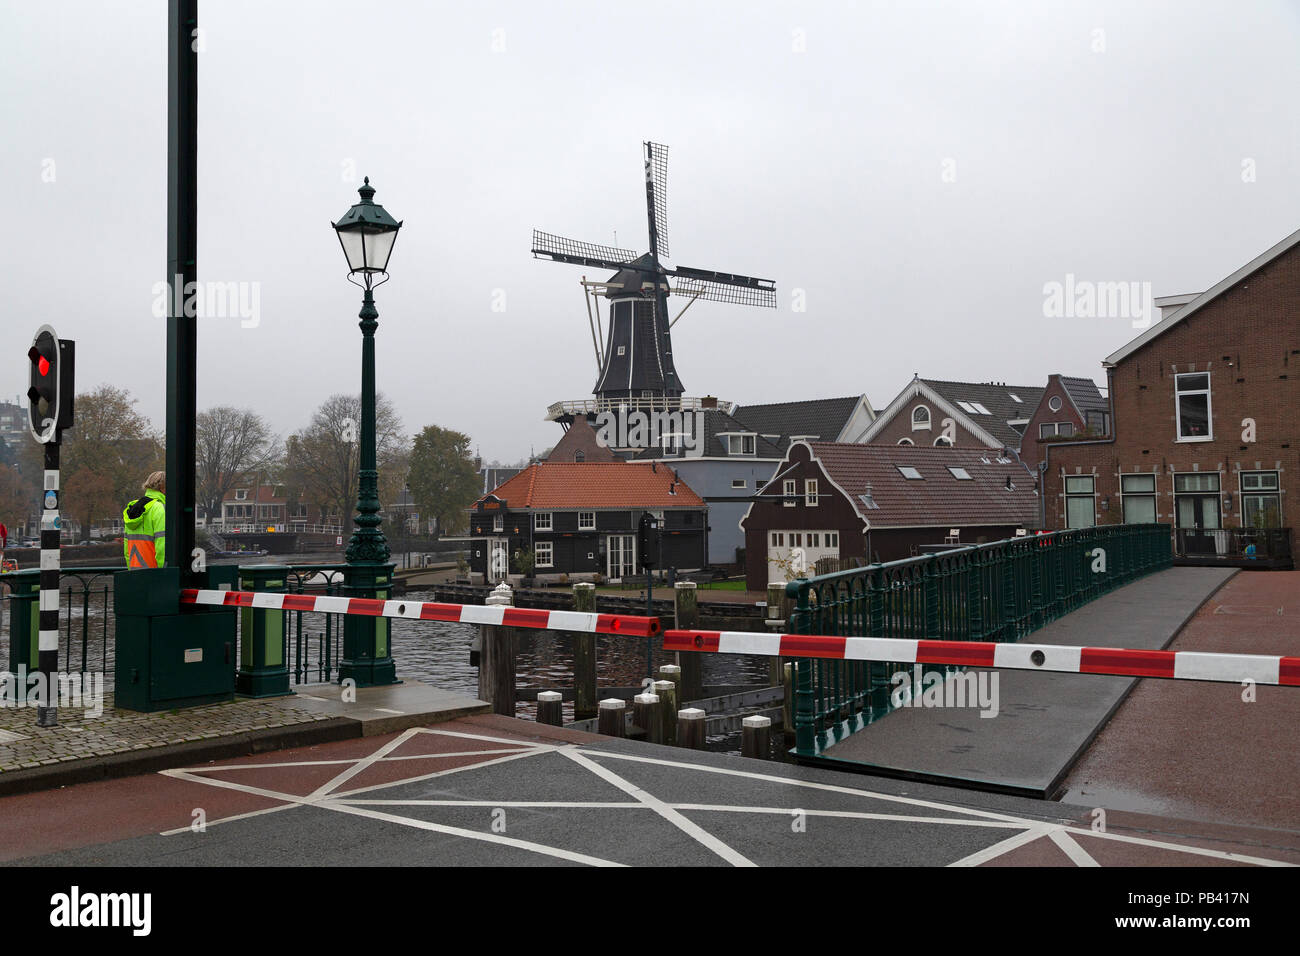 A barrier and red light signify the opening of a bridge over the River Spaarne in Haarlem, the Netherlands. The De Adriaan windmill (Molen de Adriaan) Stock Photo